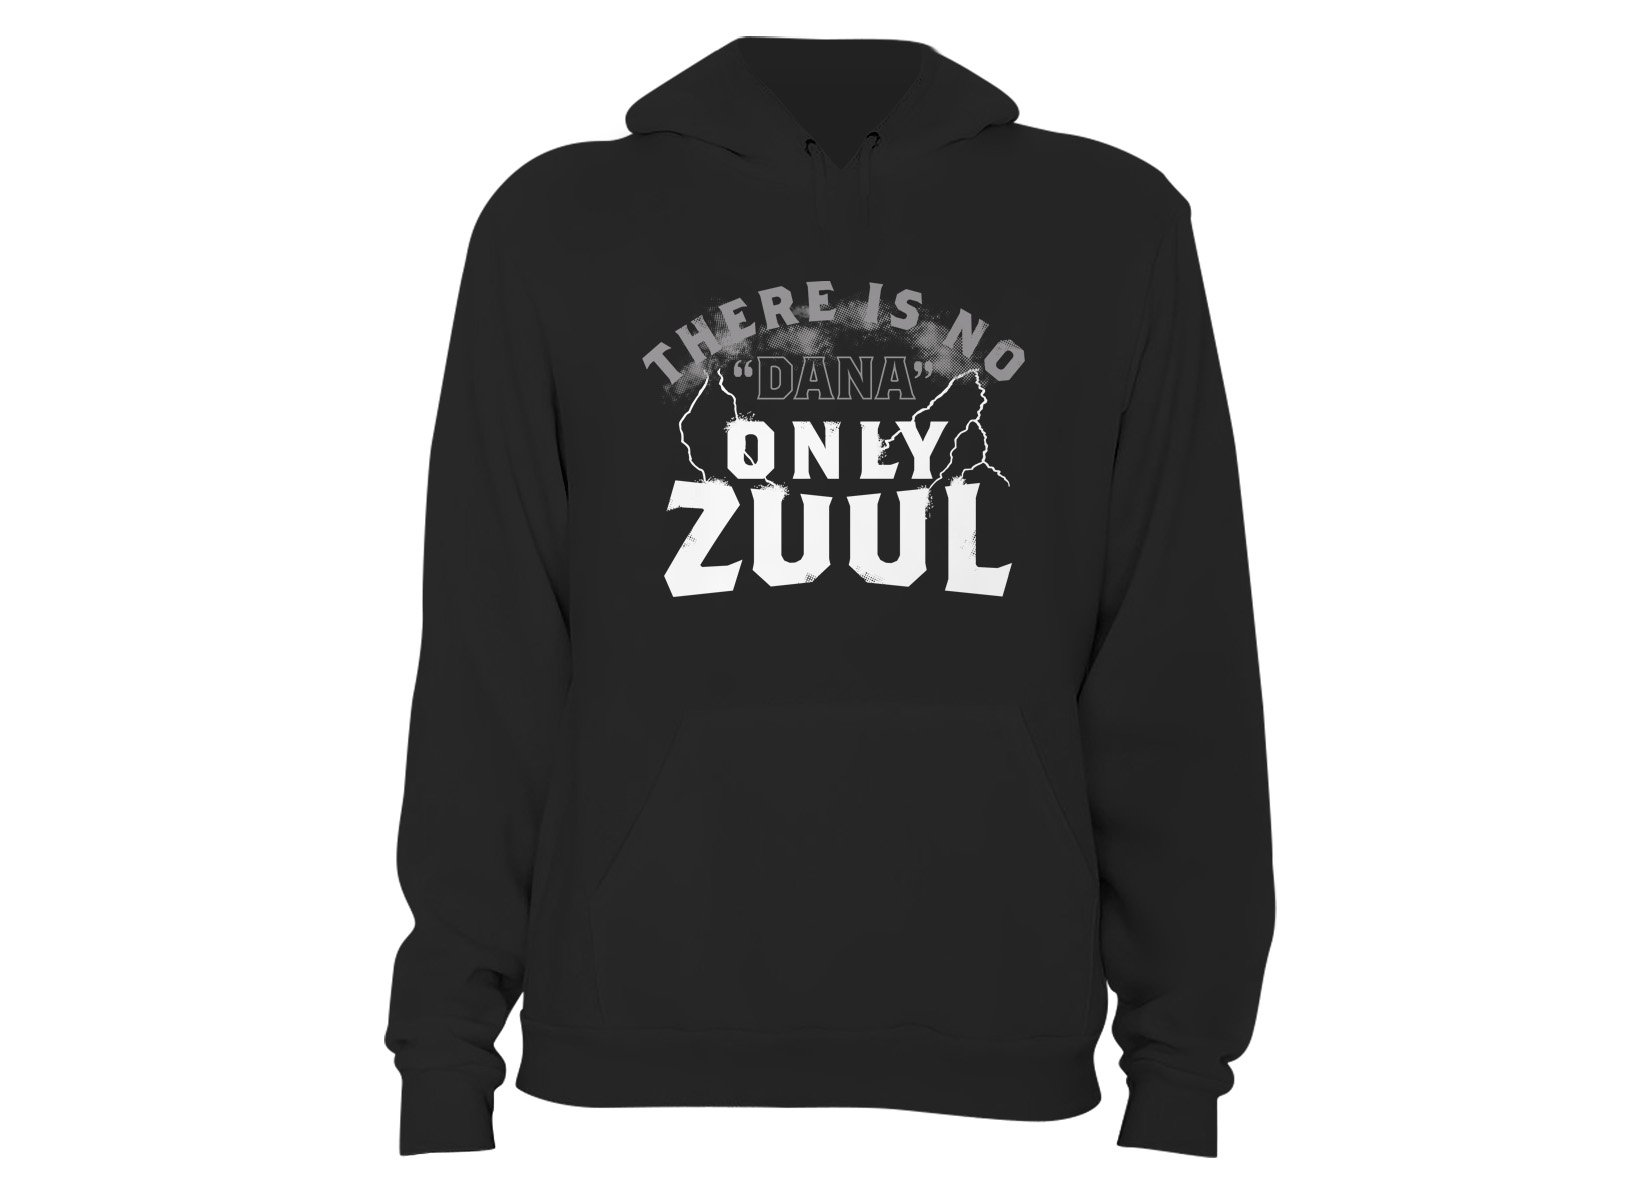 Only Zuul on Hoodie